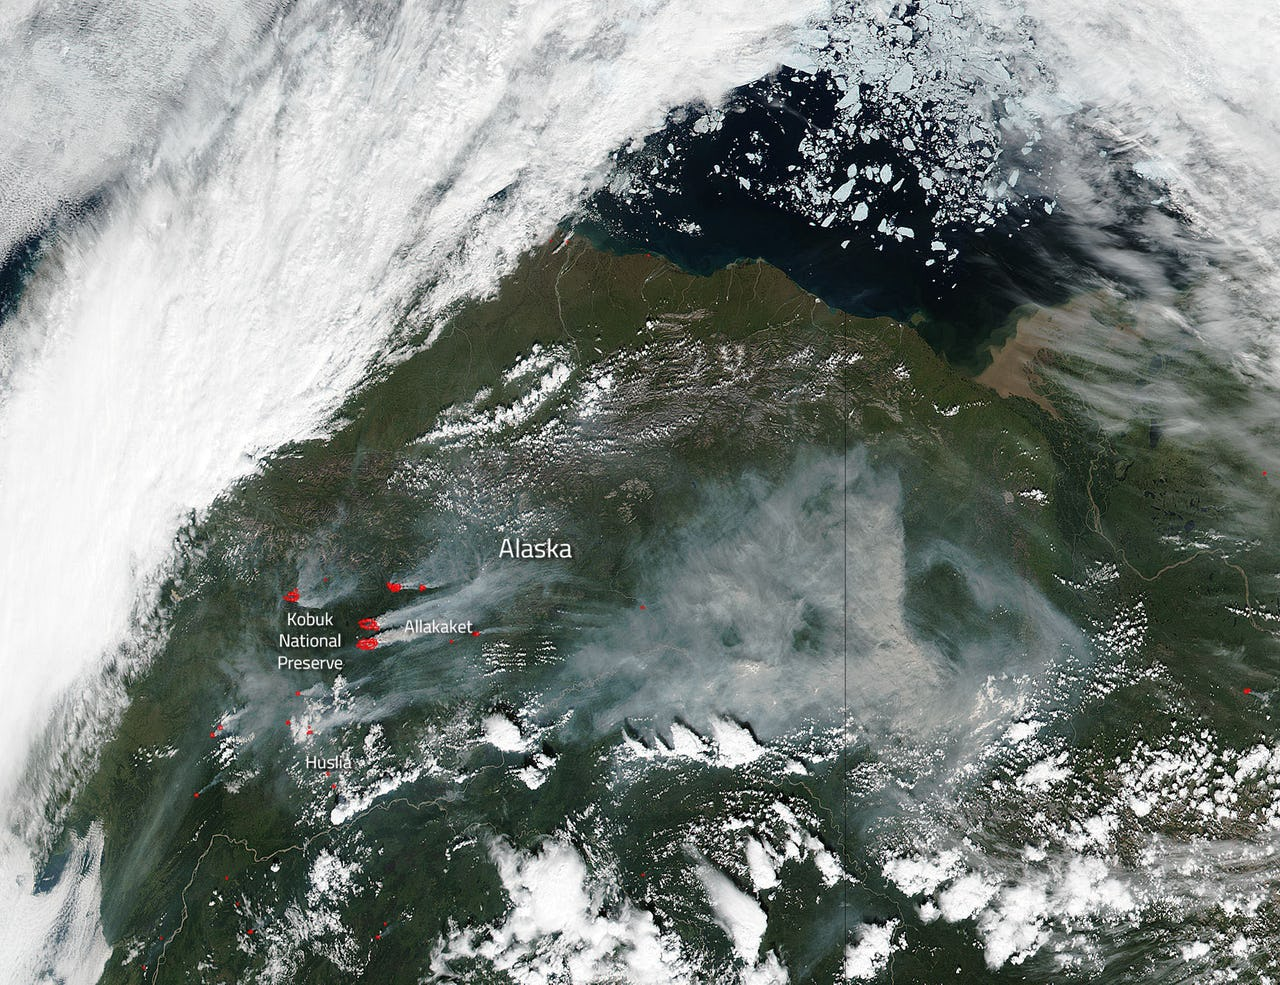 Alaska wildland fire information map website showing active fires in alaska. Arctic Wildfires May Add To Global Warming The Arctic Institute